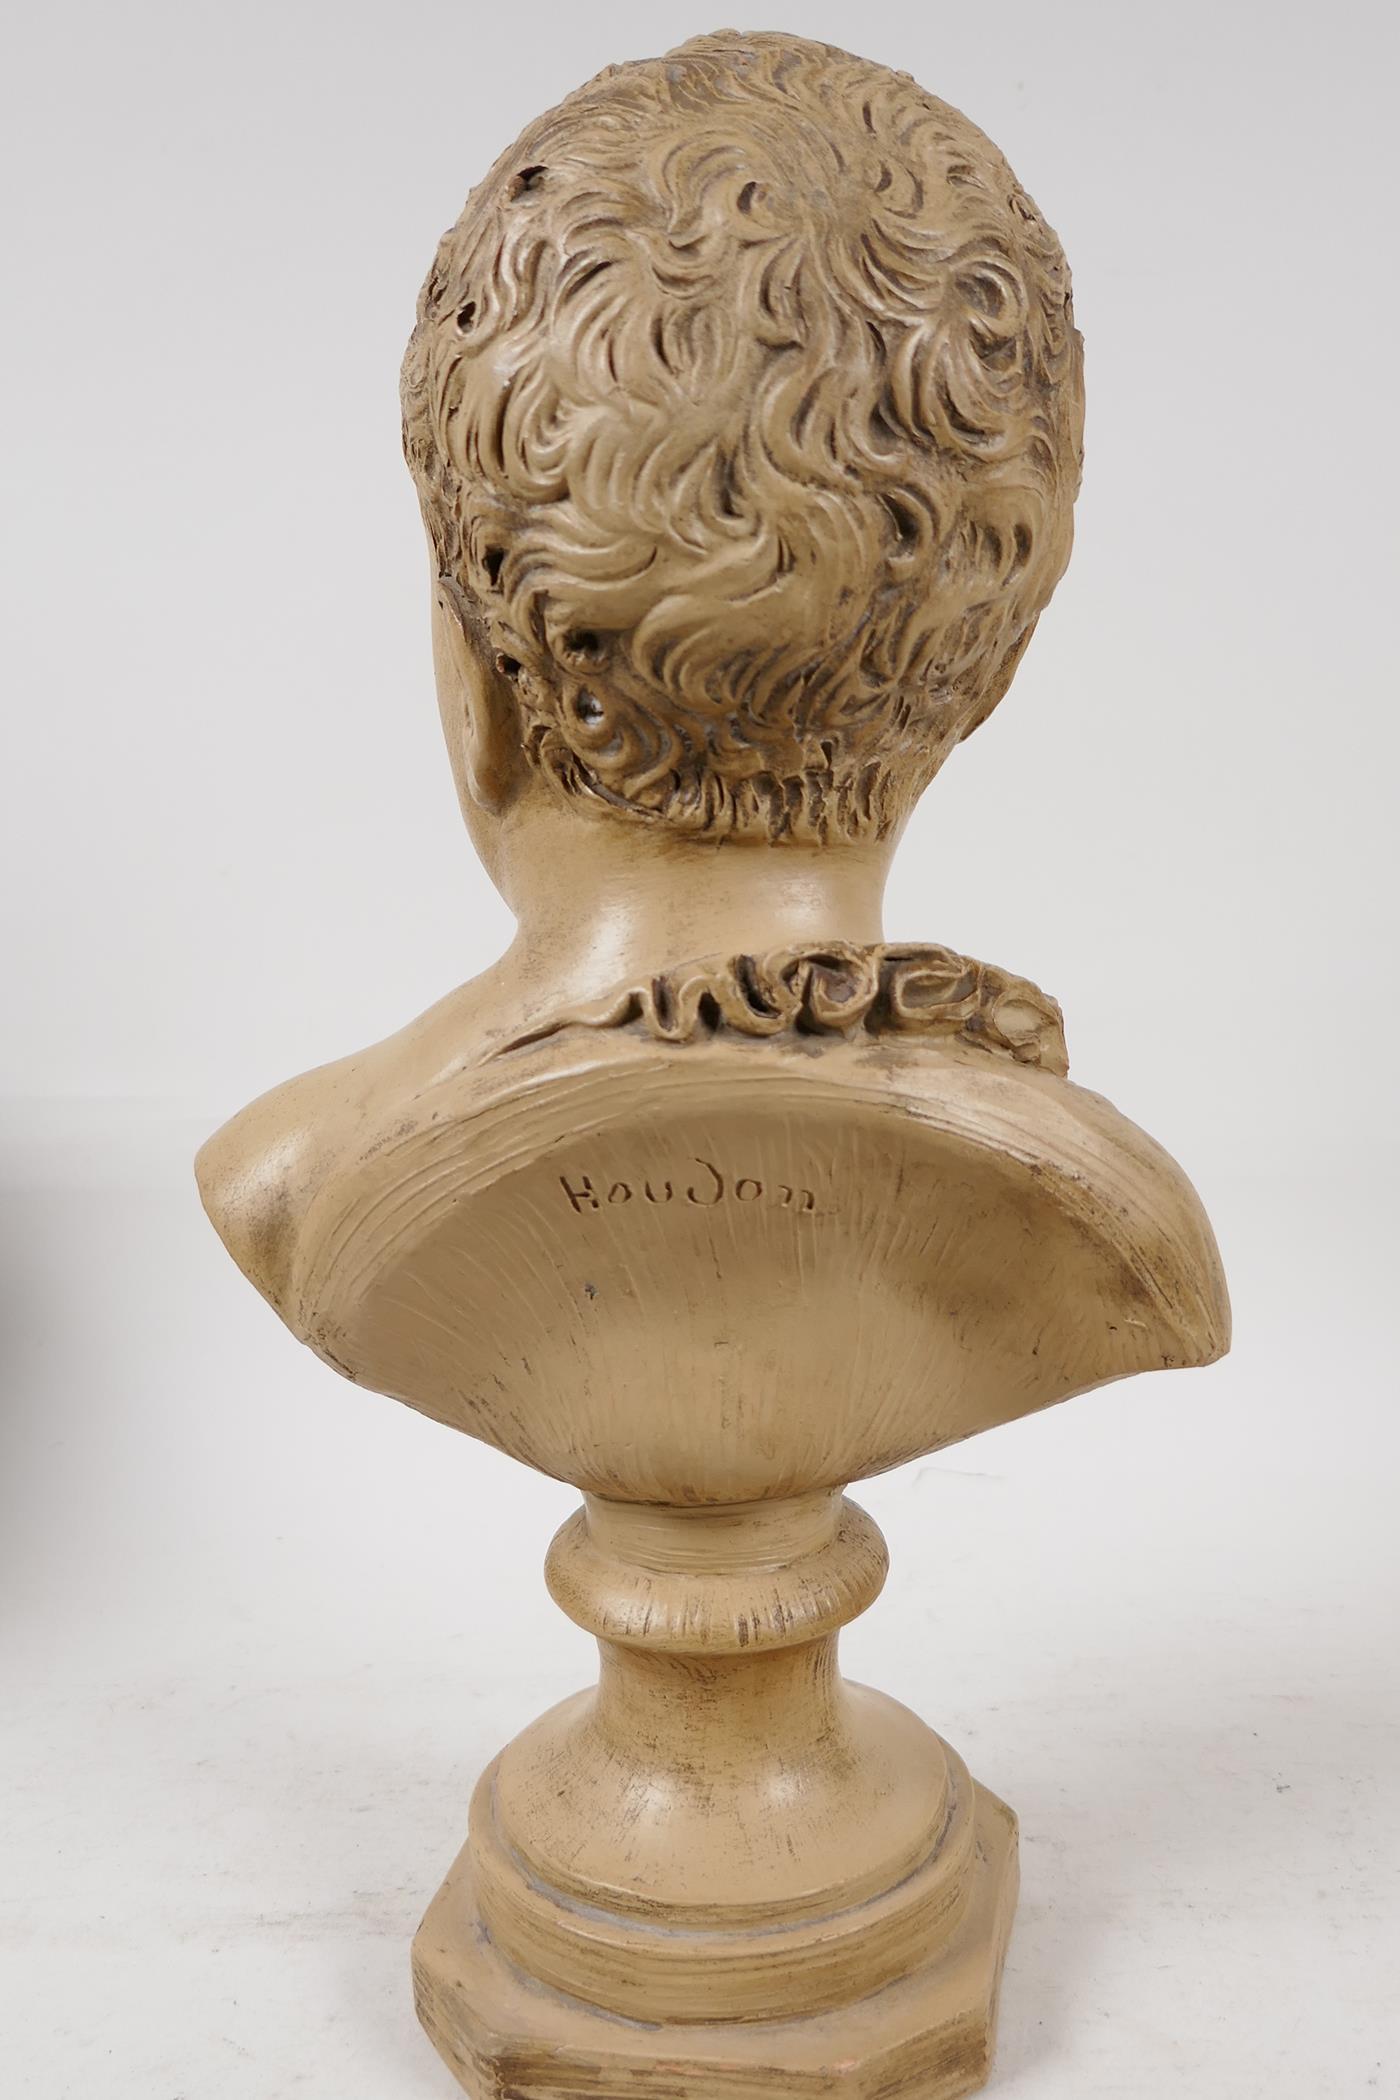 """A terracotta bust of a chld, after J.A. Houdon, 13"""" high - Image 5 of 6"""